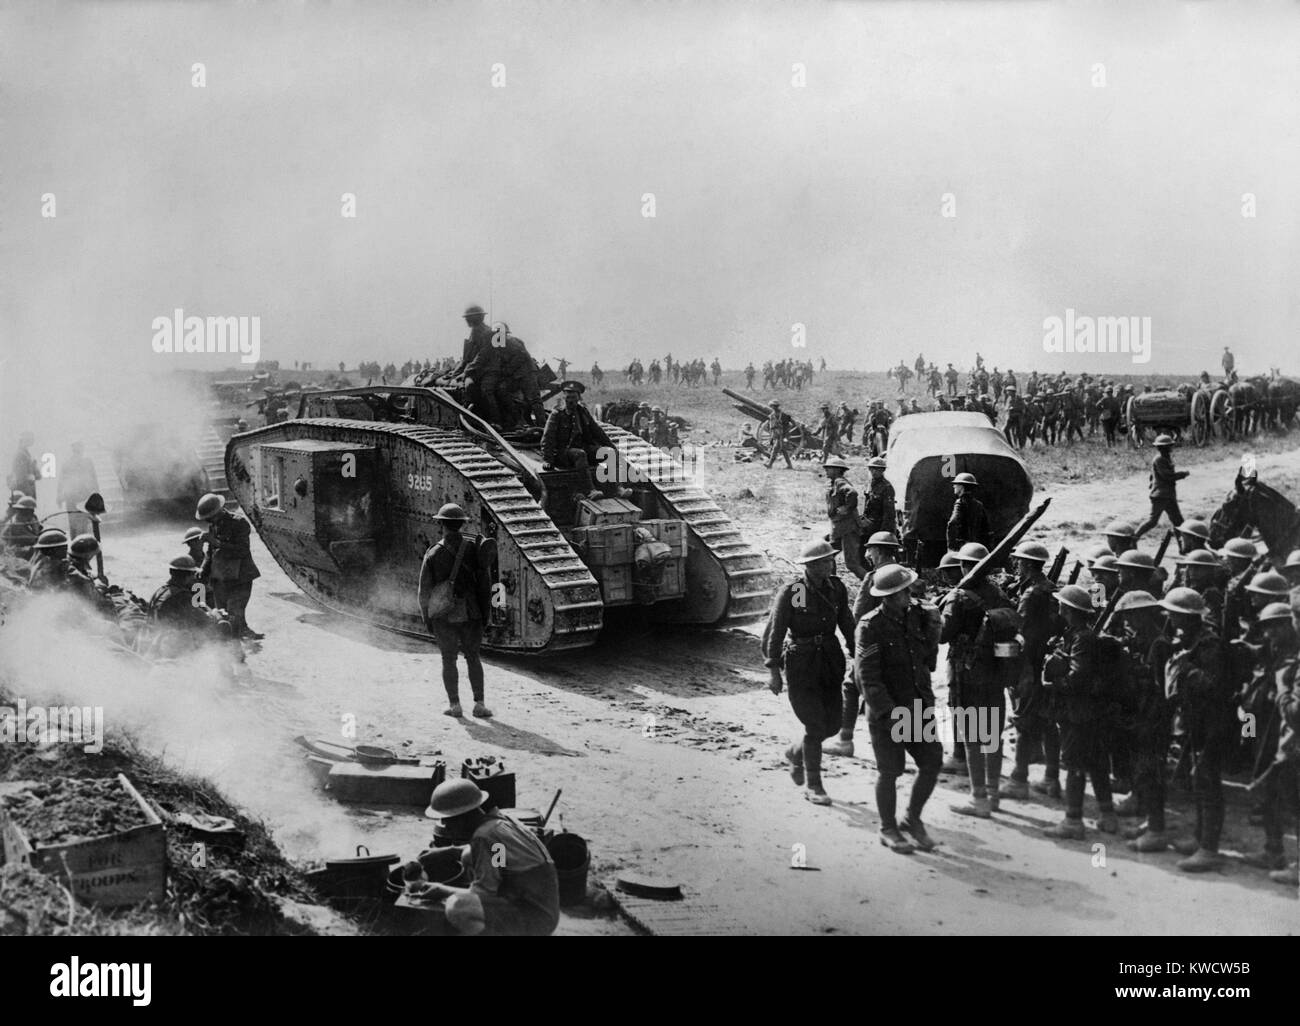 World War 1. British forces in Bapaume, France, site of a battle from August 21 through Sept. 3, 1918. Building - Stock Image